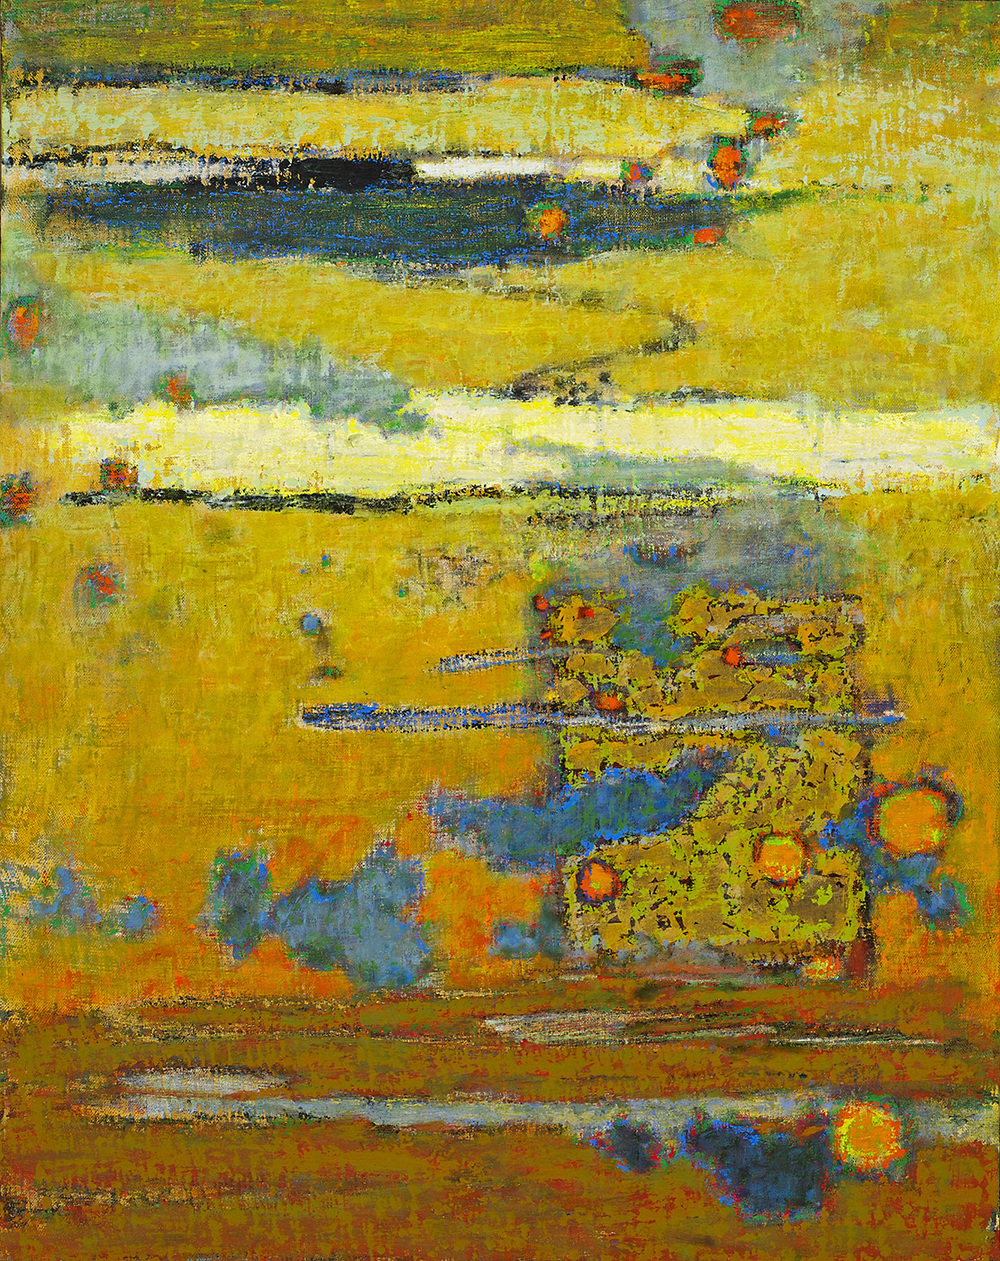 Waning Hours | oil on canvas | 28 x 22"